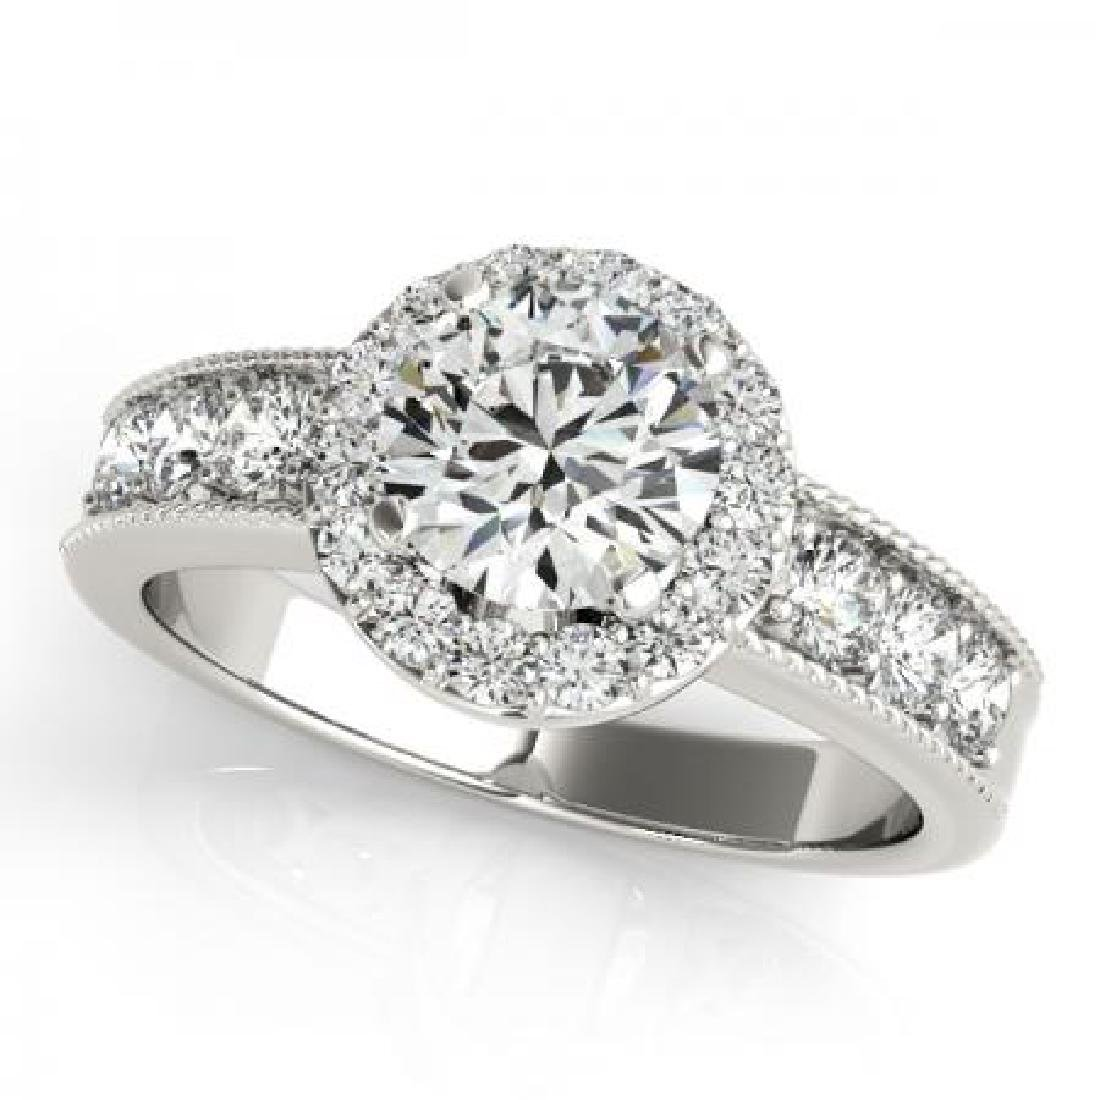 CERTIFIED PLATINUM 1.70 CT G-H/VS-SI1 DIAMOND HALO ENGA